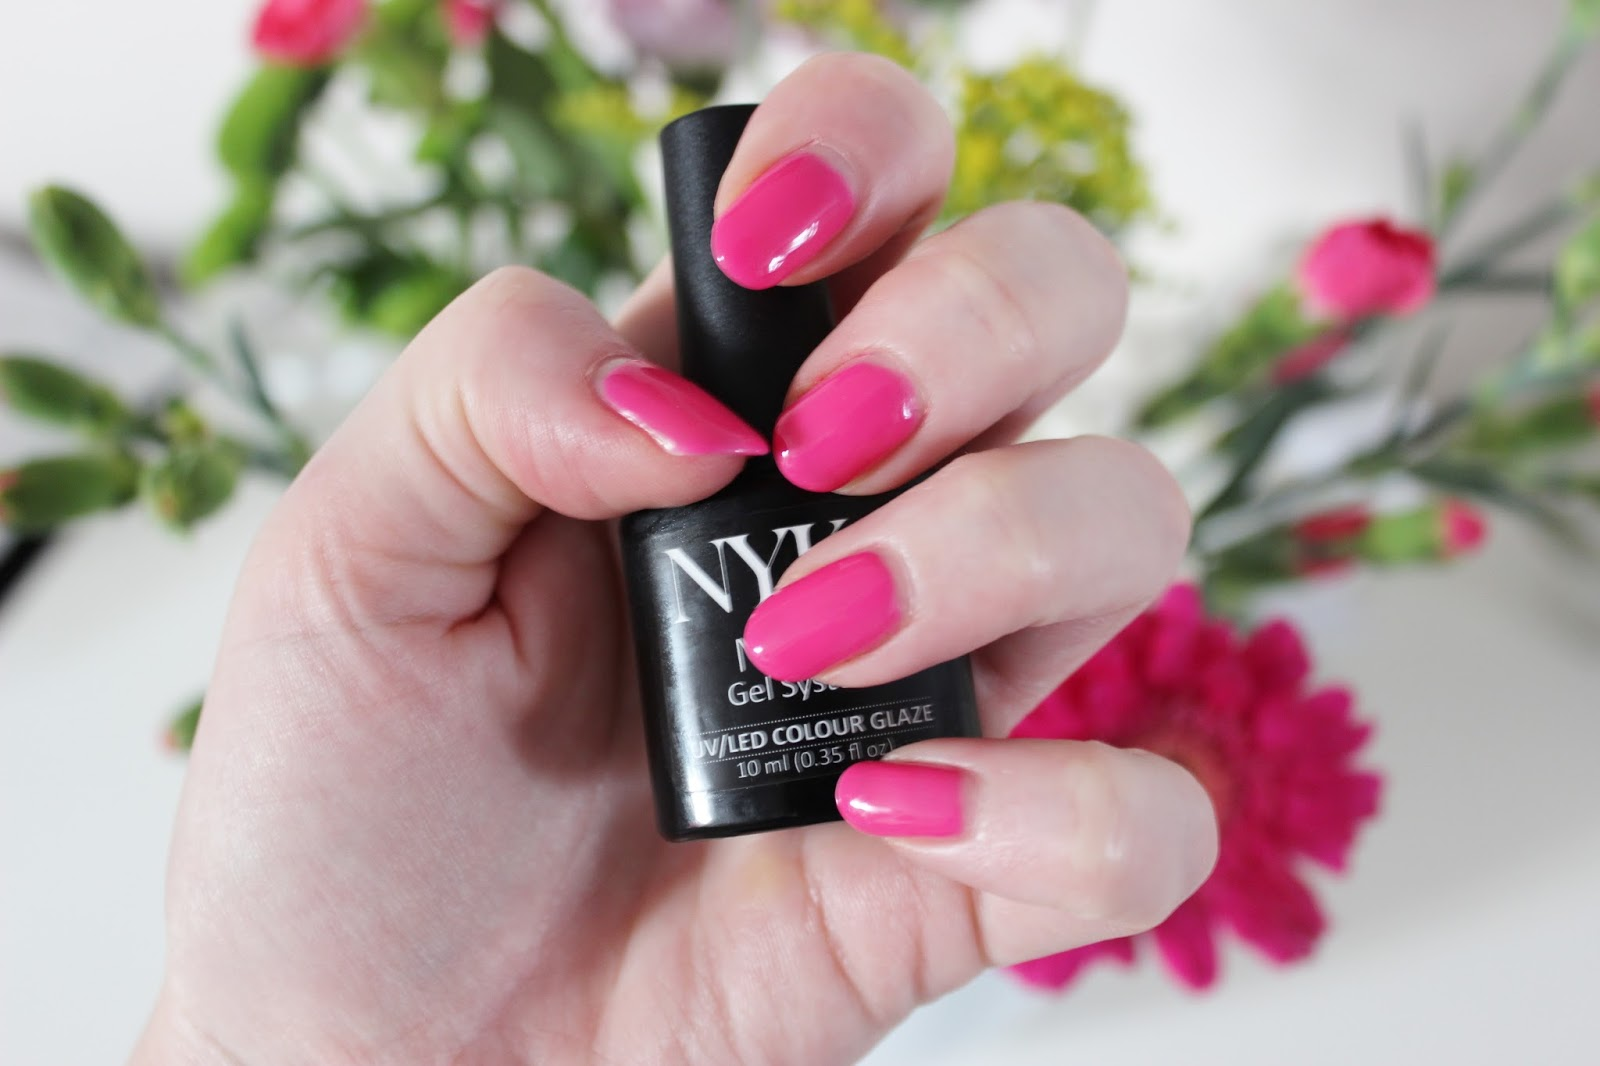 Nyk1 Secrets At Home Gel Nail Kit Review Tales Of A Pale Face Uk